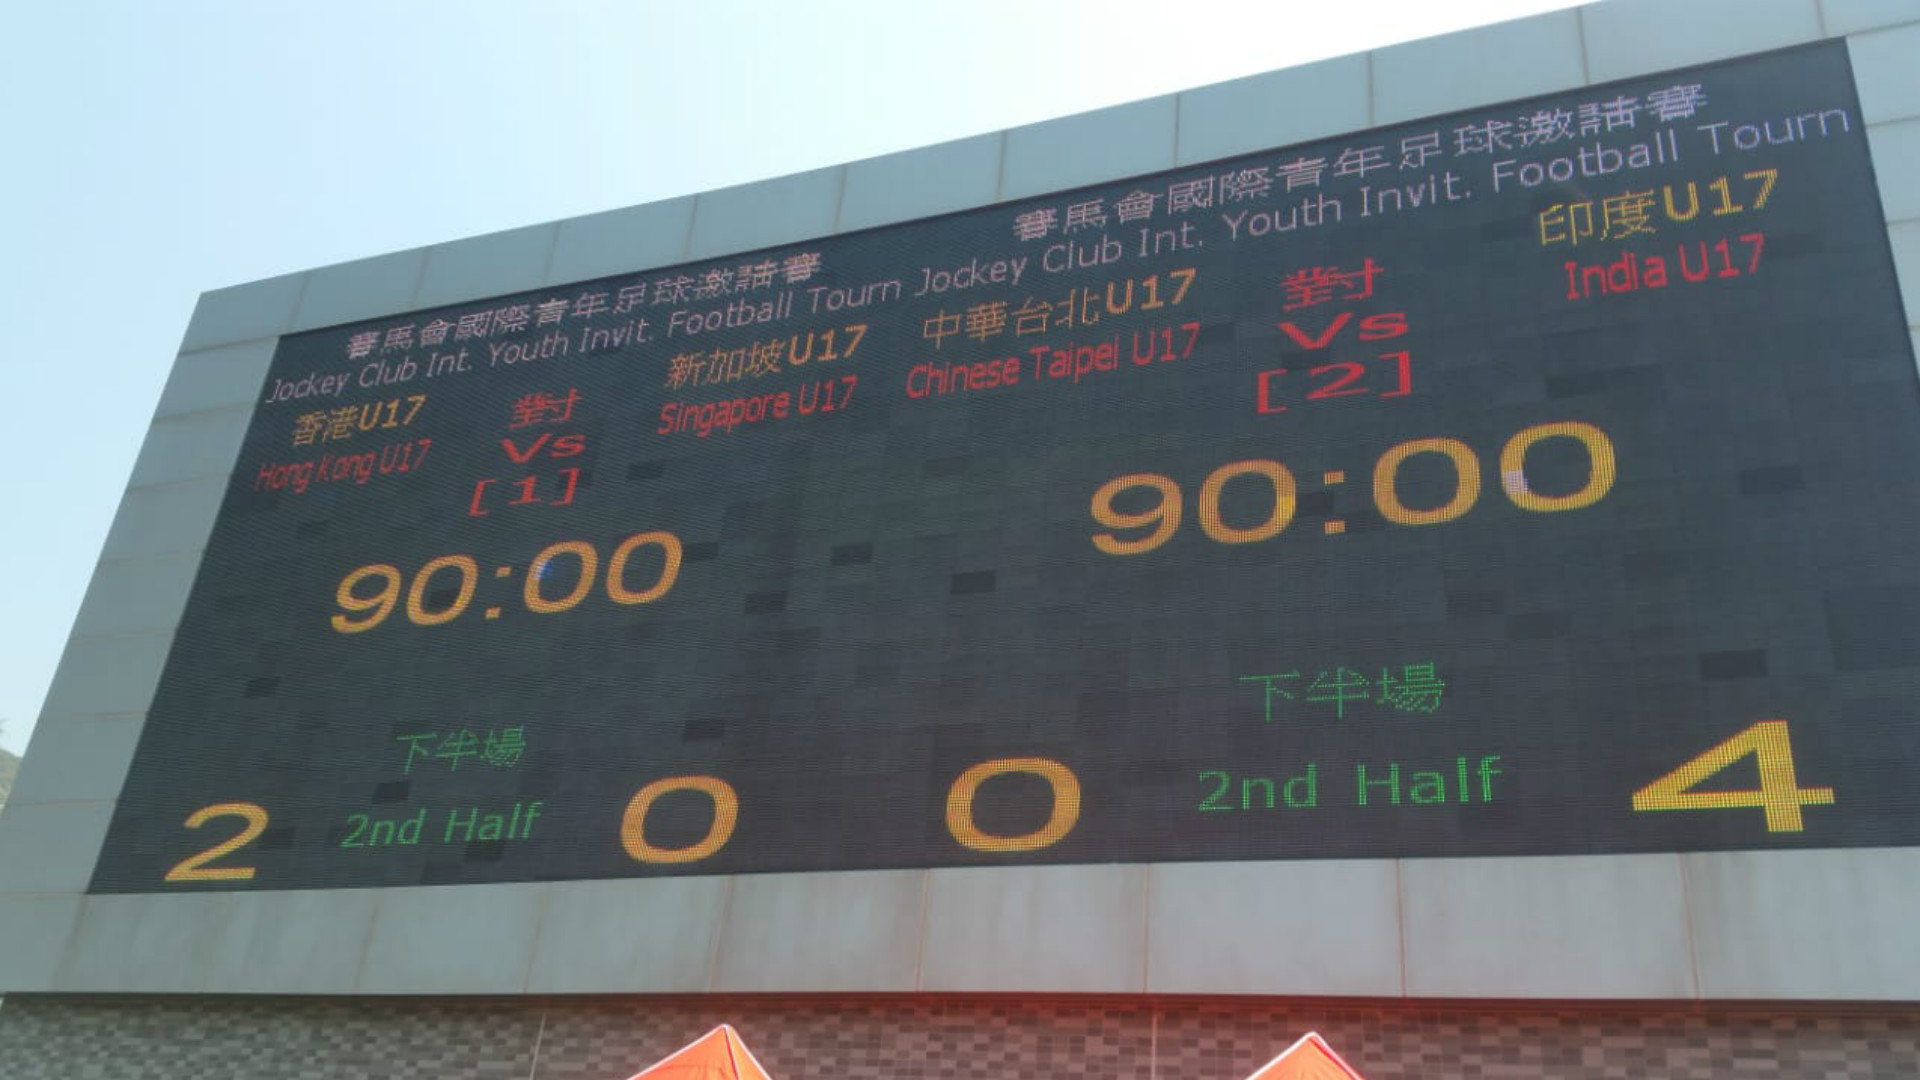 Scoreboard at the Jockey Club International Youth Invitational Football Tournament